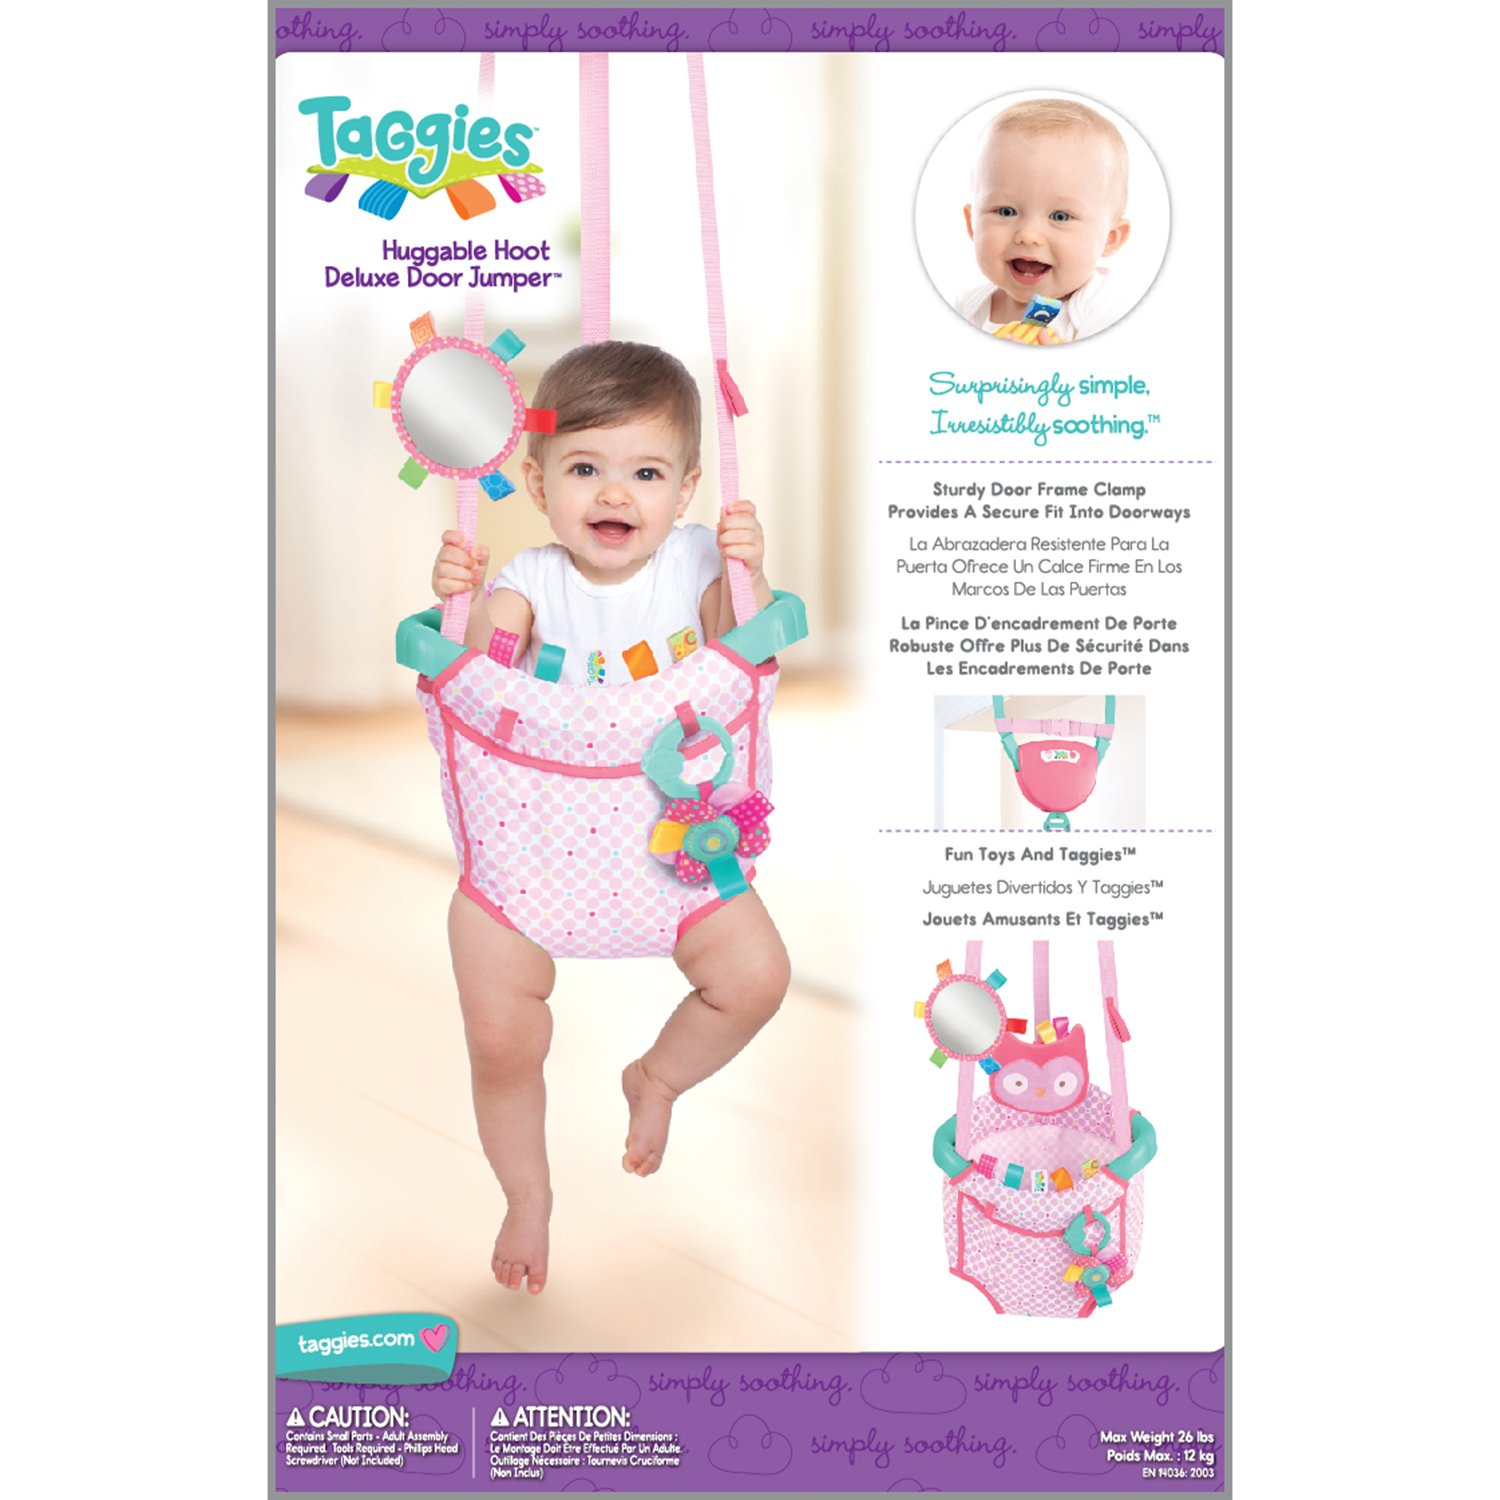 Amazon.com: Taggies Deluxe Door Jumper, Huggable Hoot: Baby